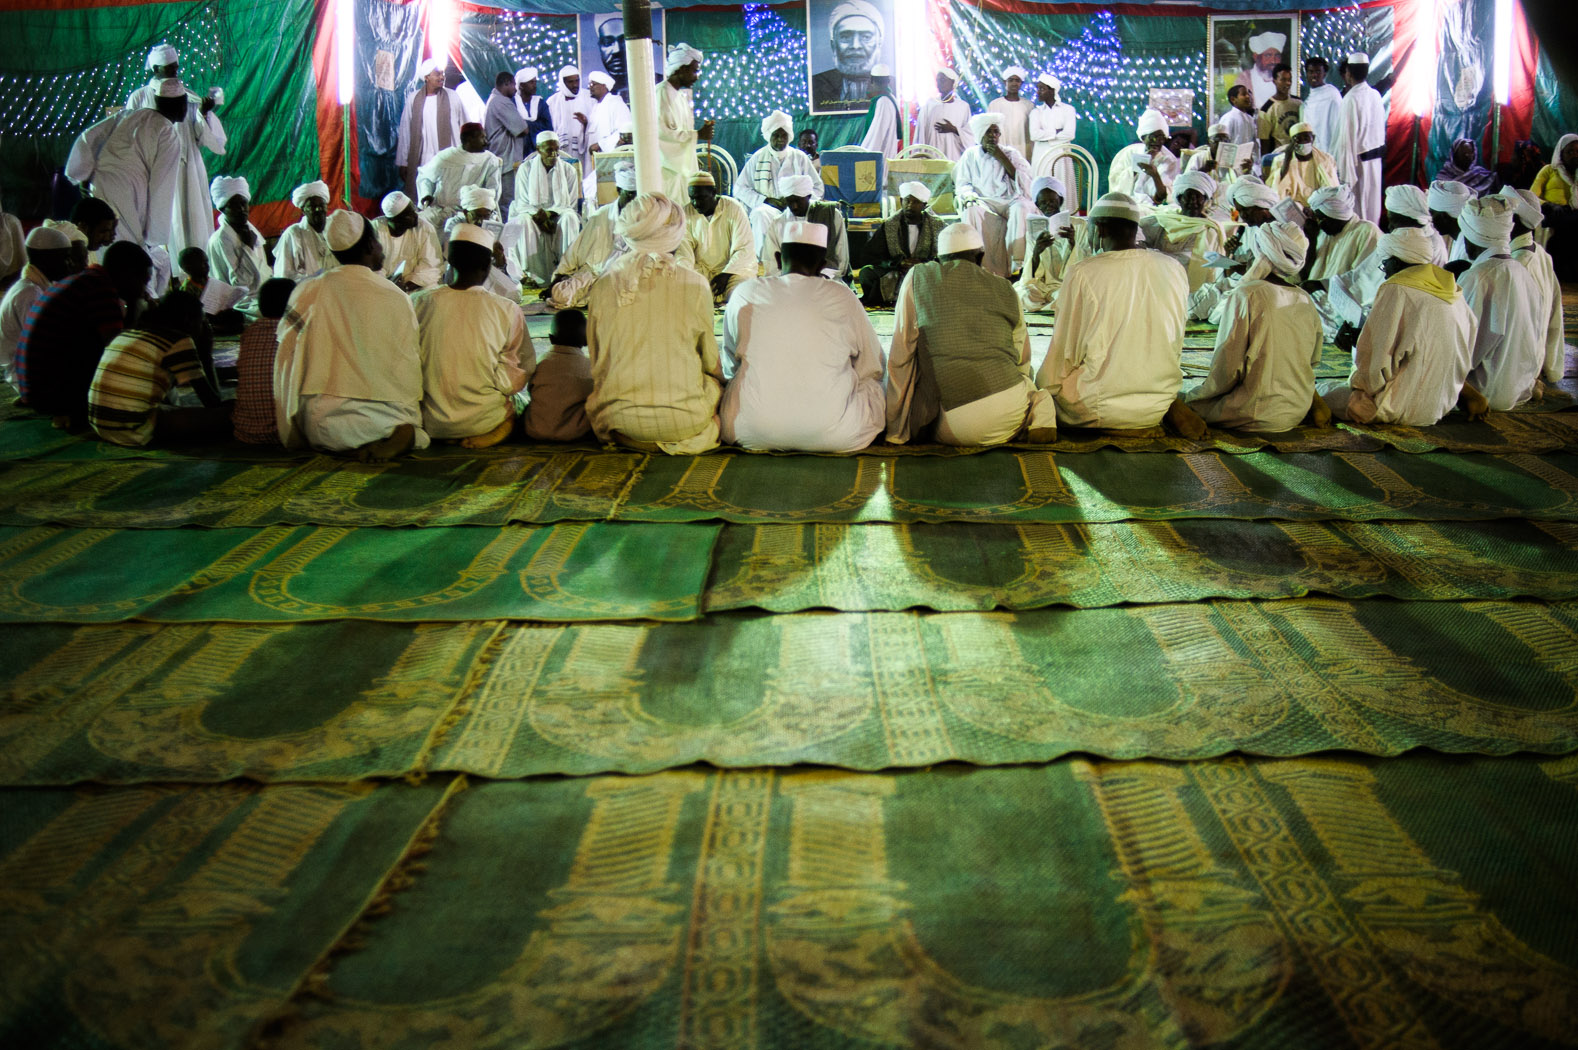 A group of sufis sit listening to stories of the life of the Prophet Mohamed.